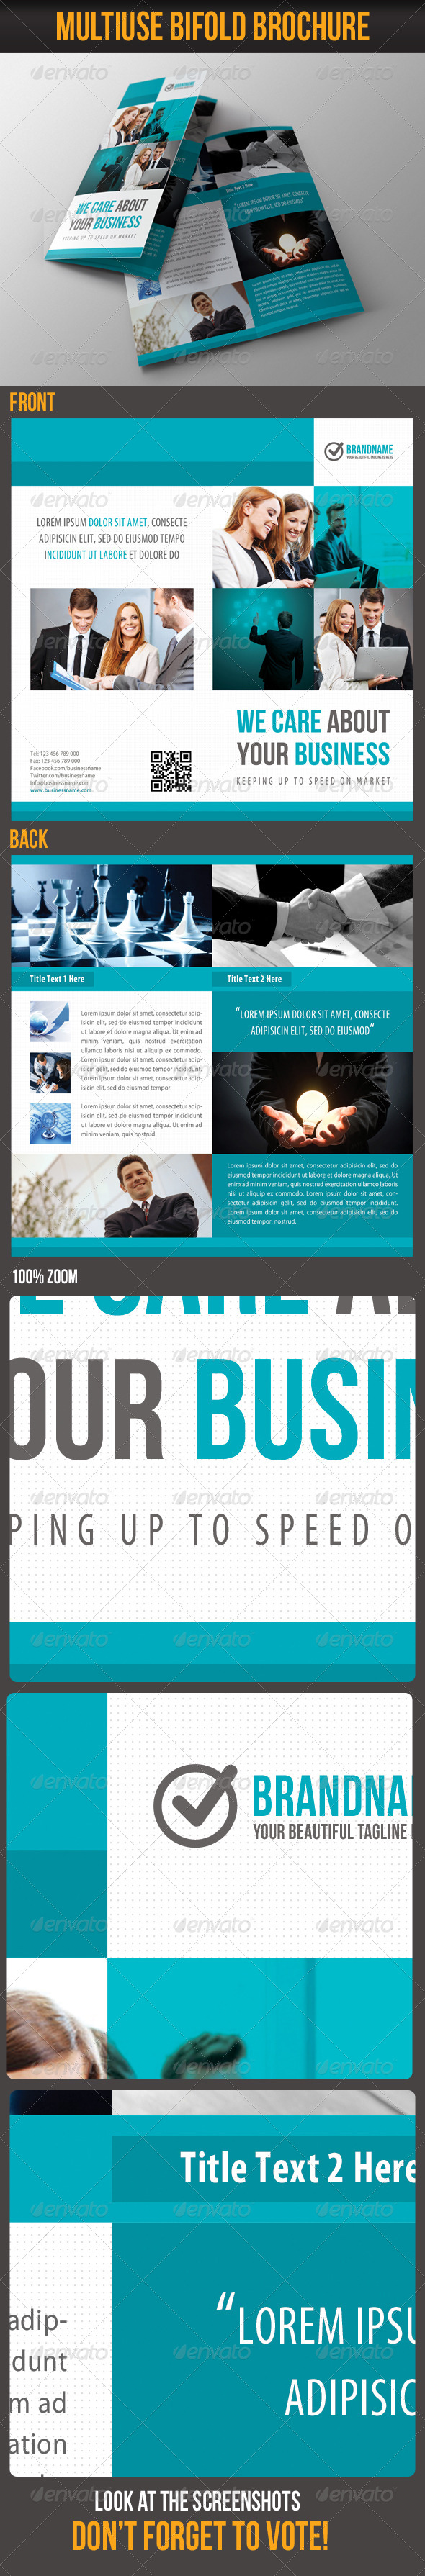 Multiuse Bifold Brochure 14 - Corporate Brochures